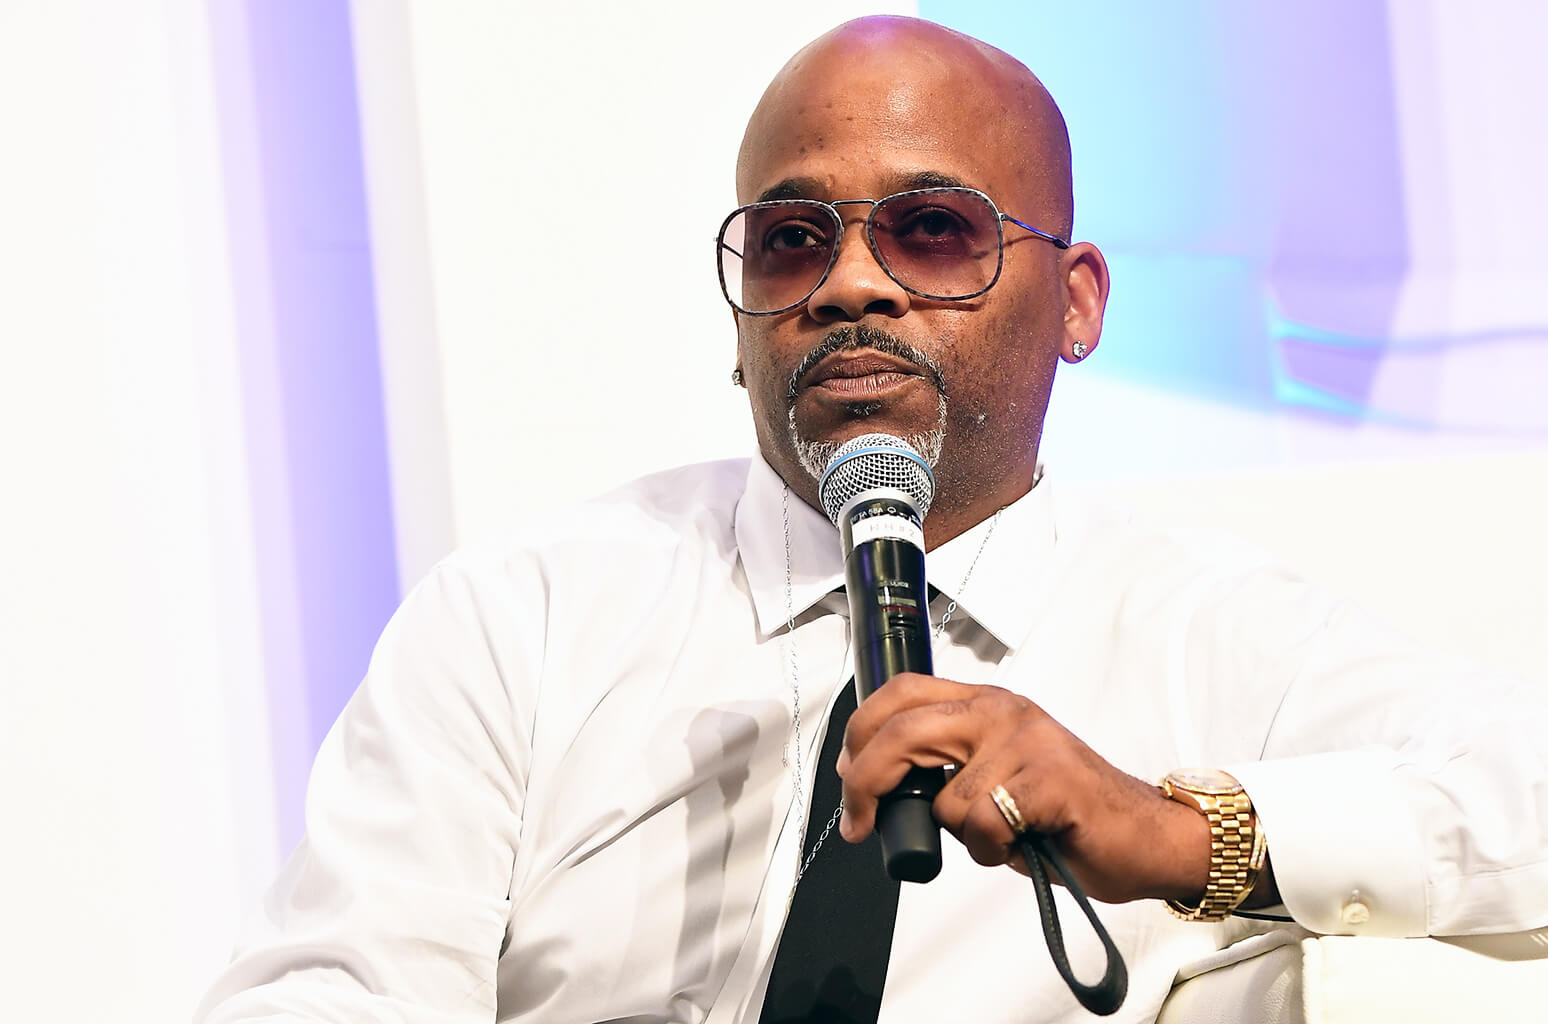 Dame Dash Plans to Release Weekly Video Content About Maintaining Diabetes